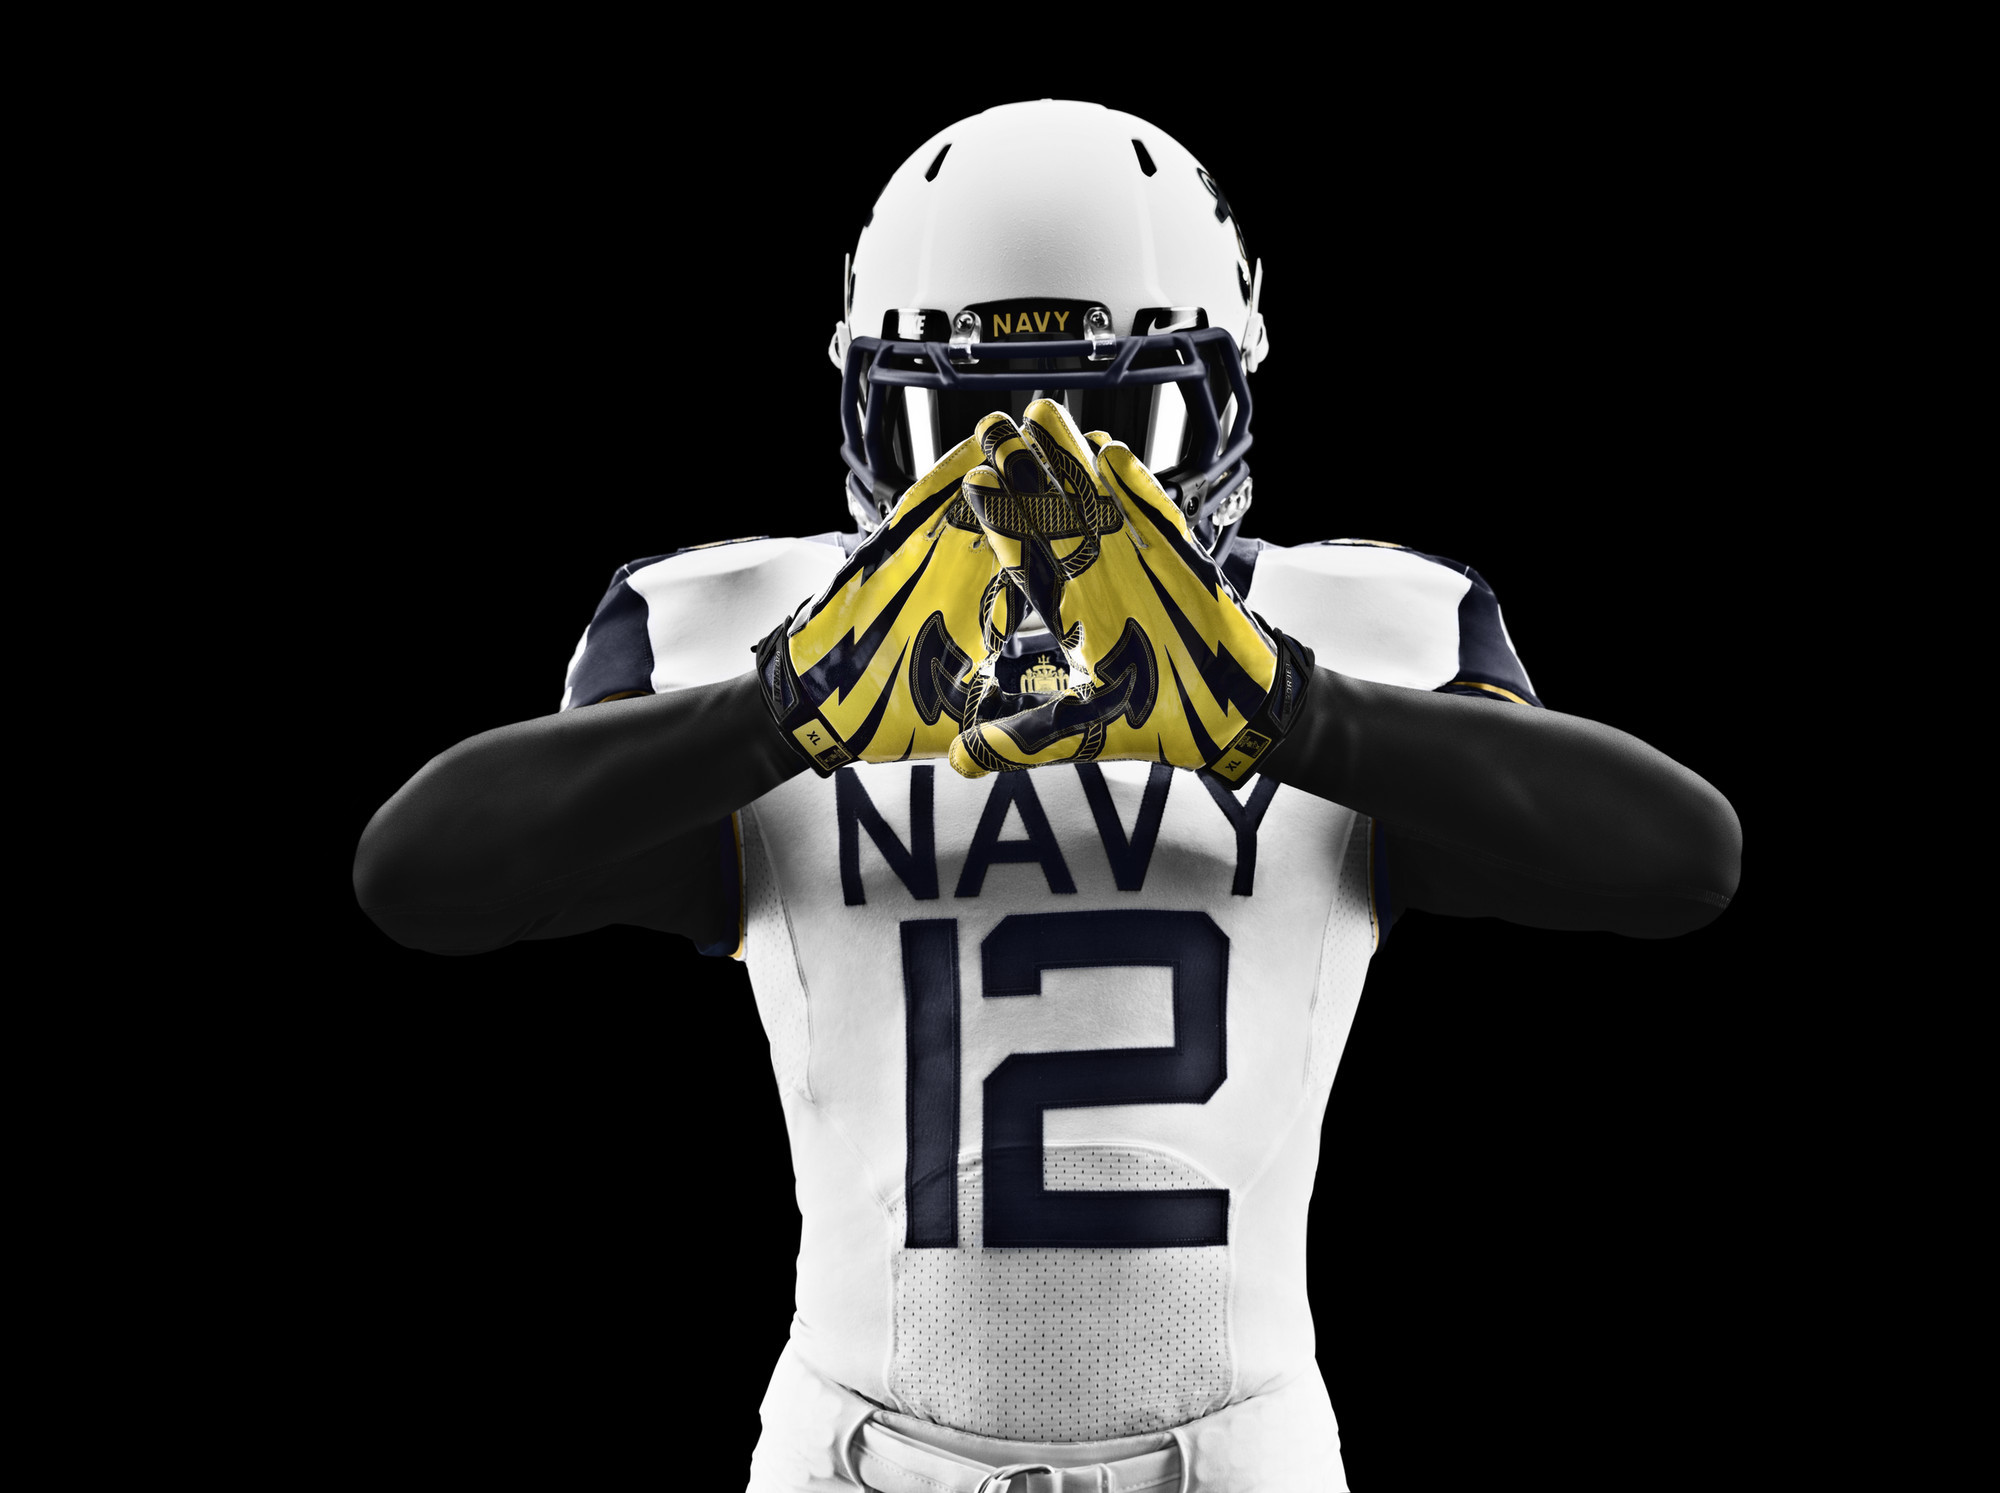 Nike Rolls Out New Army and Navy Football Uniforms